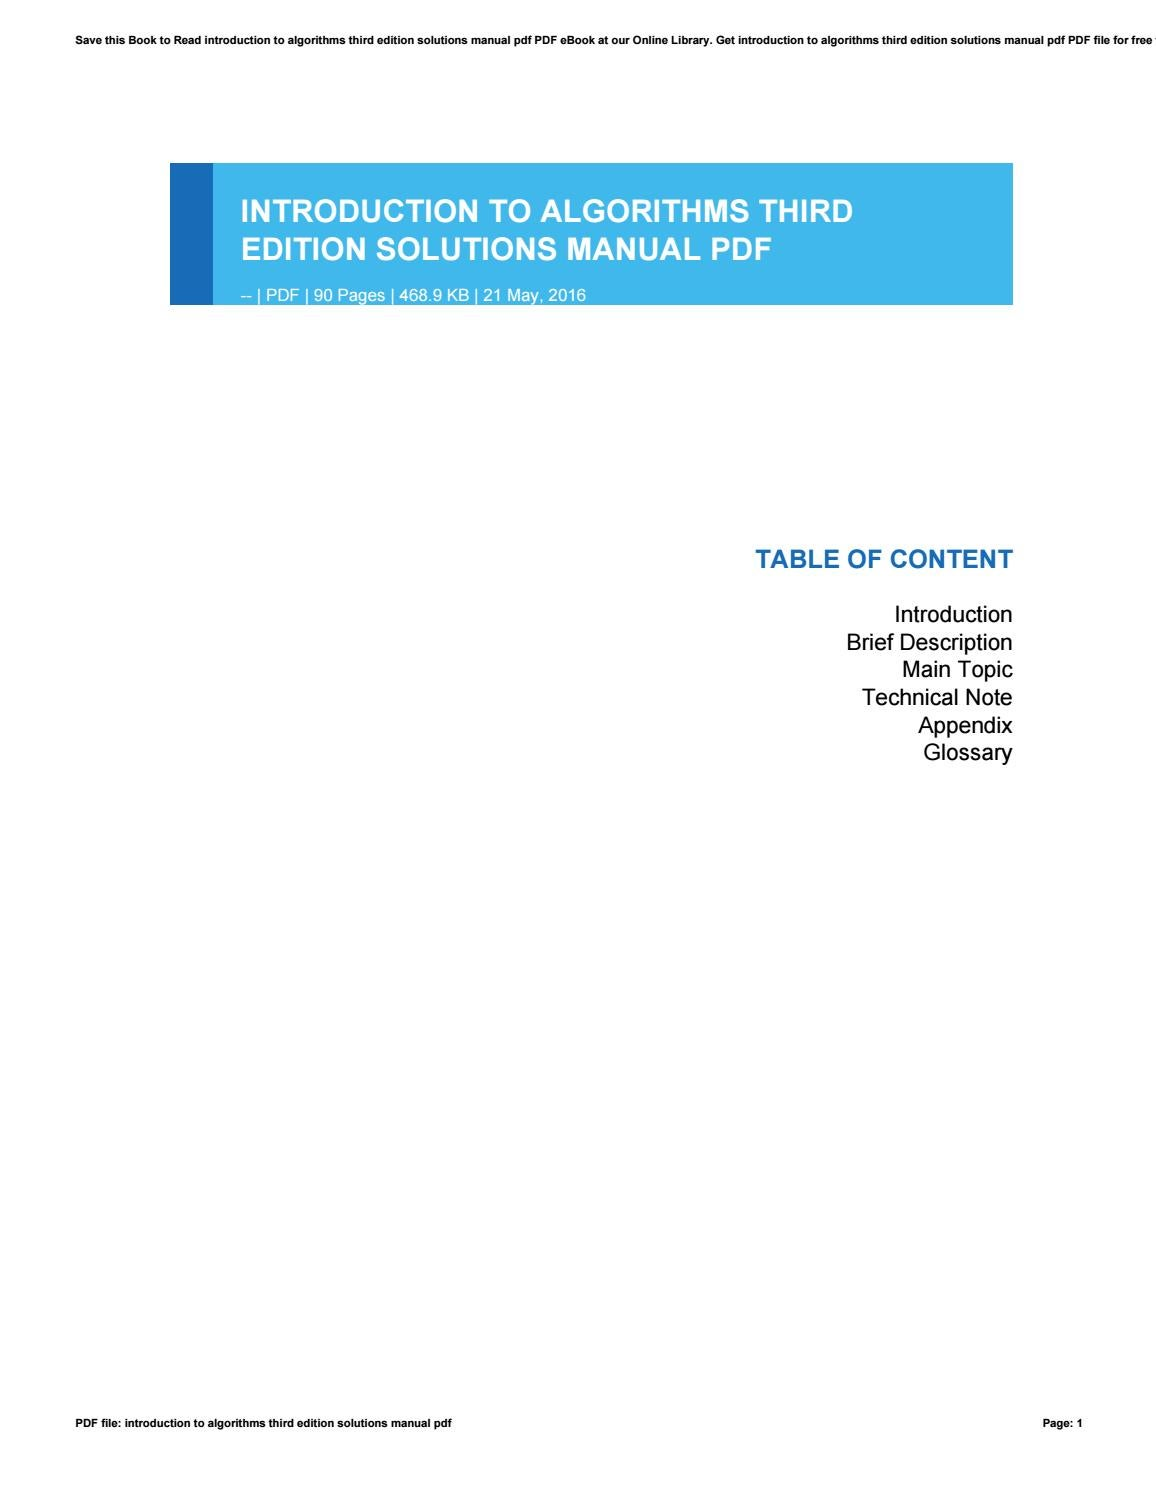 introduction to algorithms solution manual